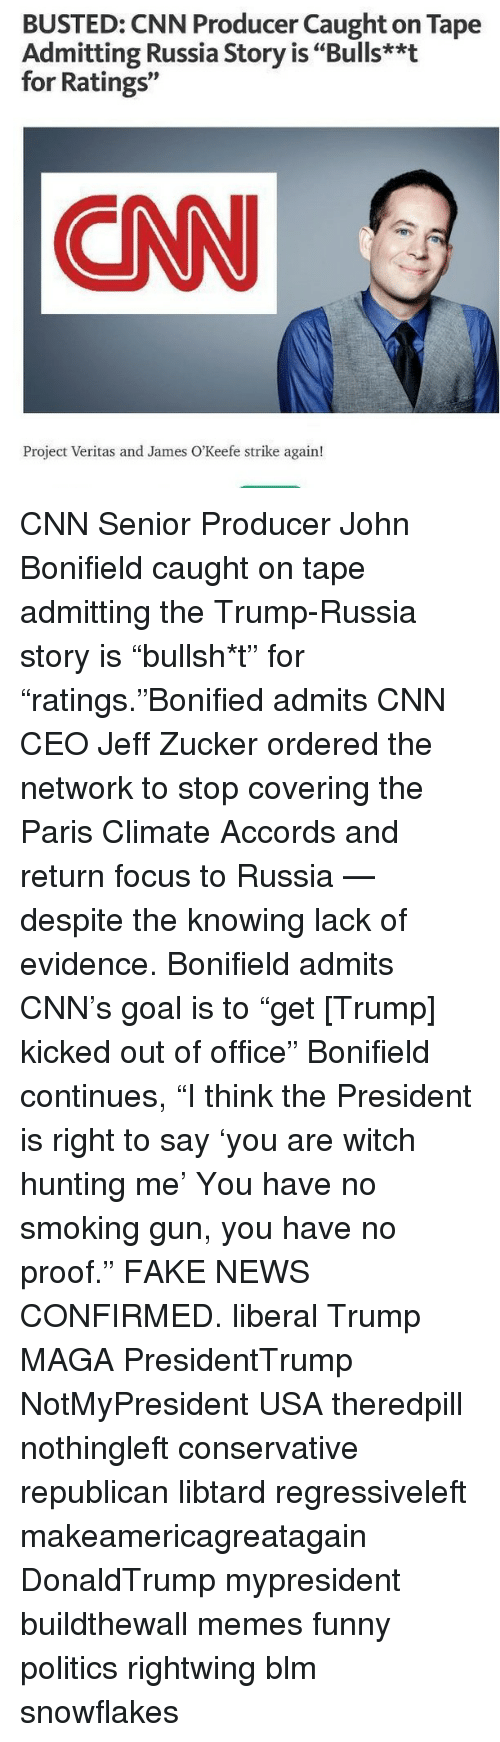 """seniority: BUSTED: CNN Producer Caught on Tape  Admitting Russia Story is """"Bulls**t  for Ratings""""  CNN  Project Veritas and James O'Keefe strike again! CNN Senior Producer John Bonifield caught on tape admitting the Trump-Russia story is """"bullsh*t"""" for """"ratings.""""Bonified admits CNN CEO Jeff Zucker ordered the network to stop covering the Paris Climate Accords and return focus to Russia — despite the knowing lack of evidence. Bonifield admits CNN's goal is to """"get [Trump] kicked out of office"""" Bonifield continues, """"I think the President is right to say 'you are witch hunting me' You have no smoking gun, you have no proof."""" FAKE NEWS CONFIRMED. liberal Trump MAGA PresidentTrump NotMyPresident USA theredpill nothingleft conservative republican libtard regressiveleft makeamericagreatagain DonaldTrump mypresident buildthewall memes funny politics rightwing blm snowflakes"""